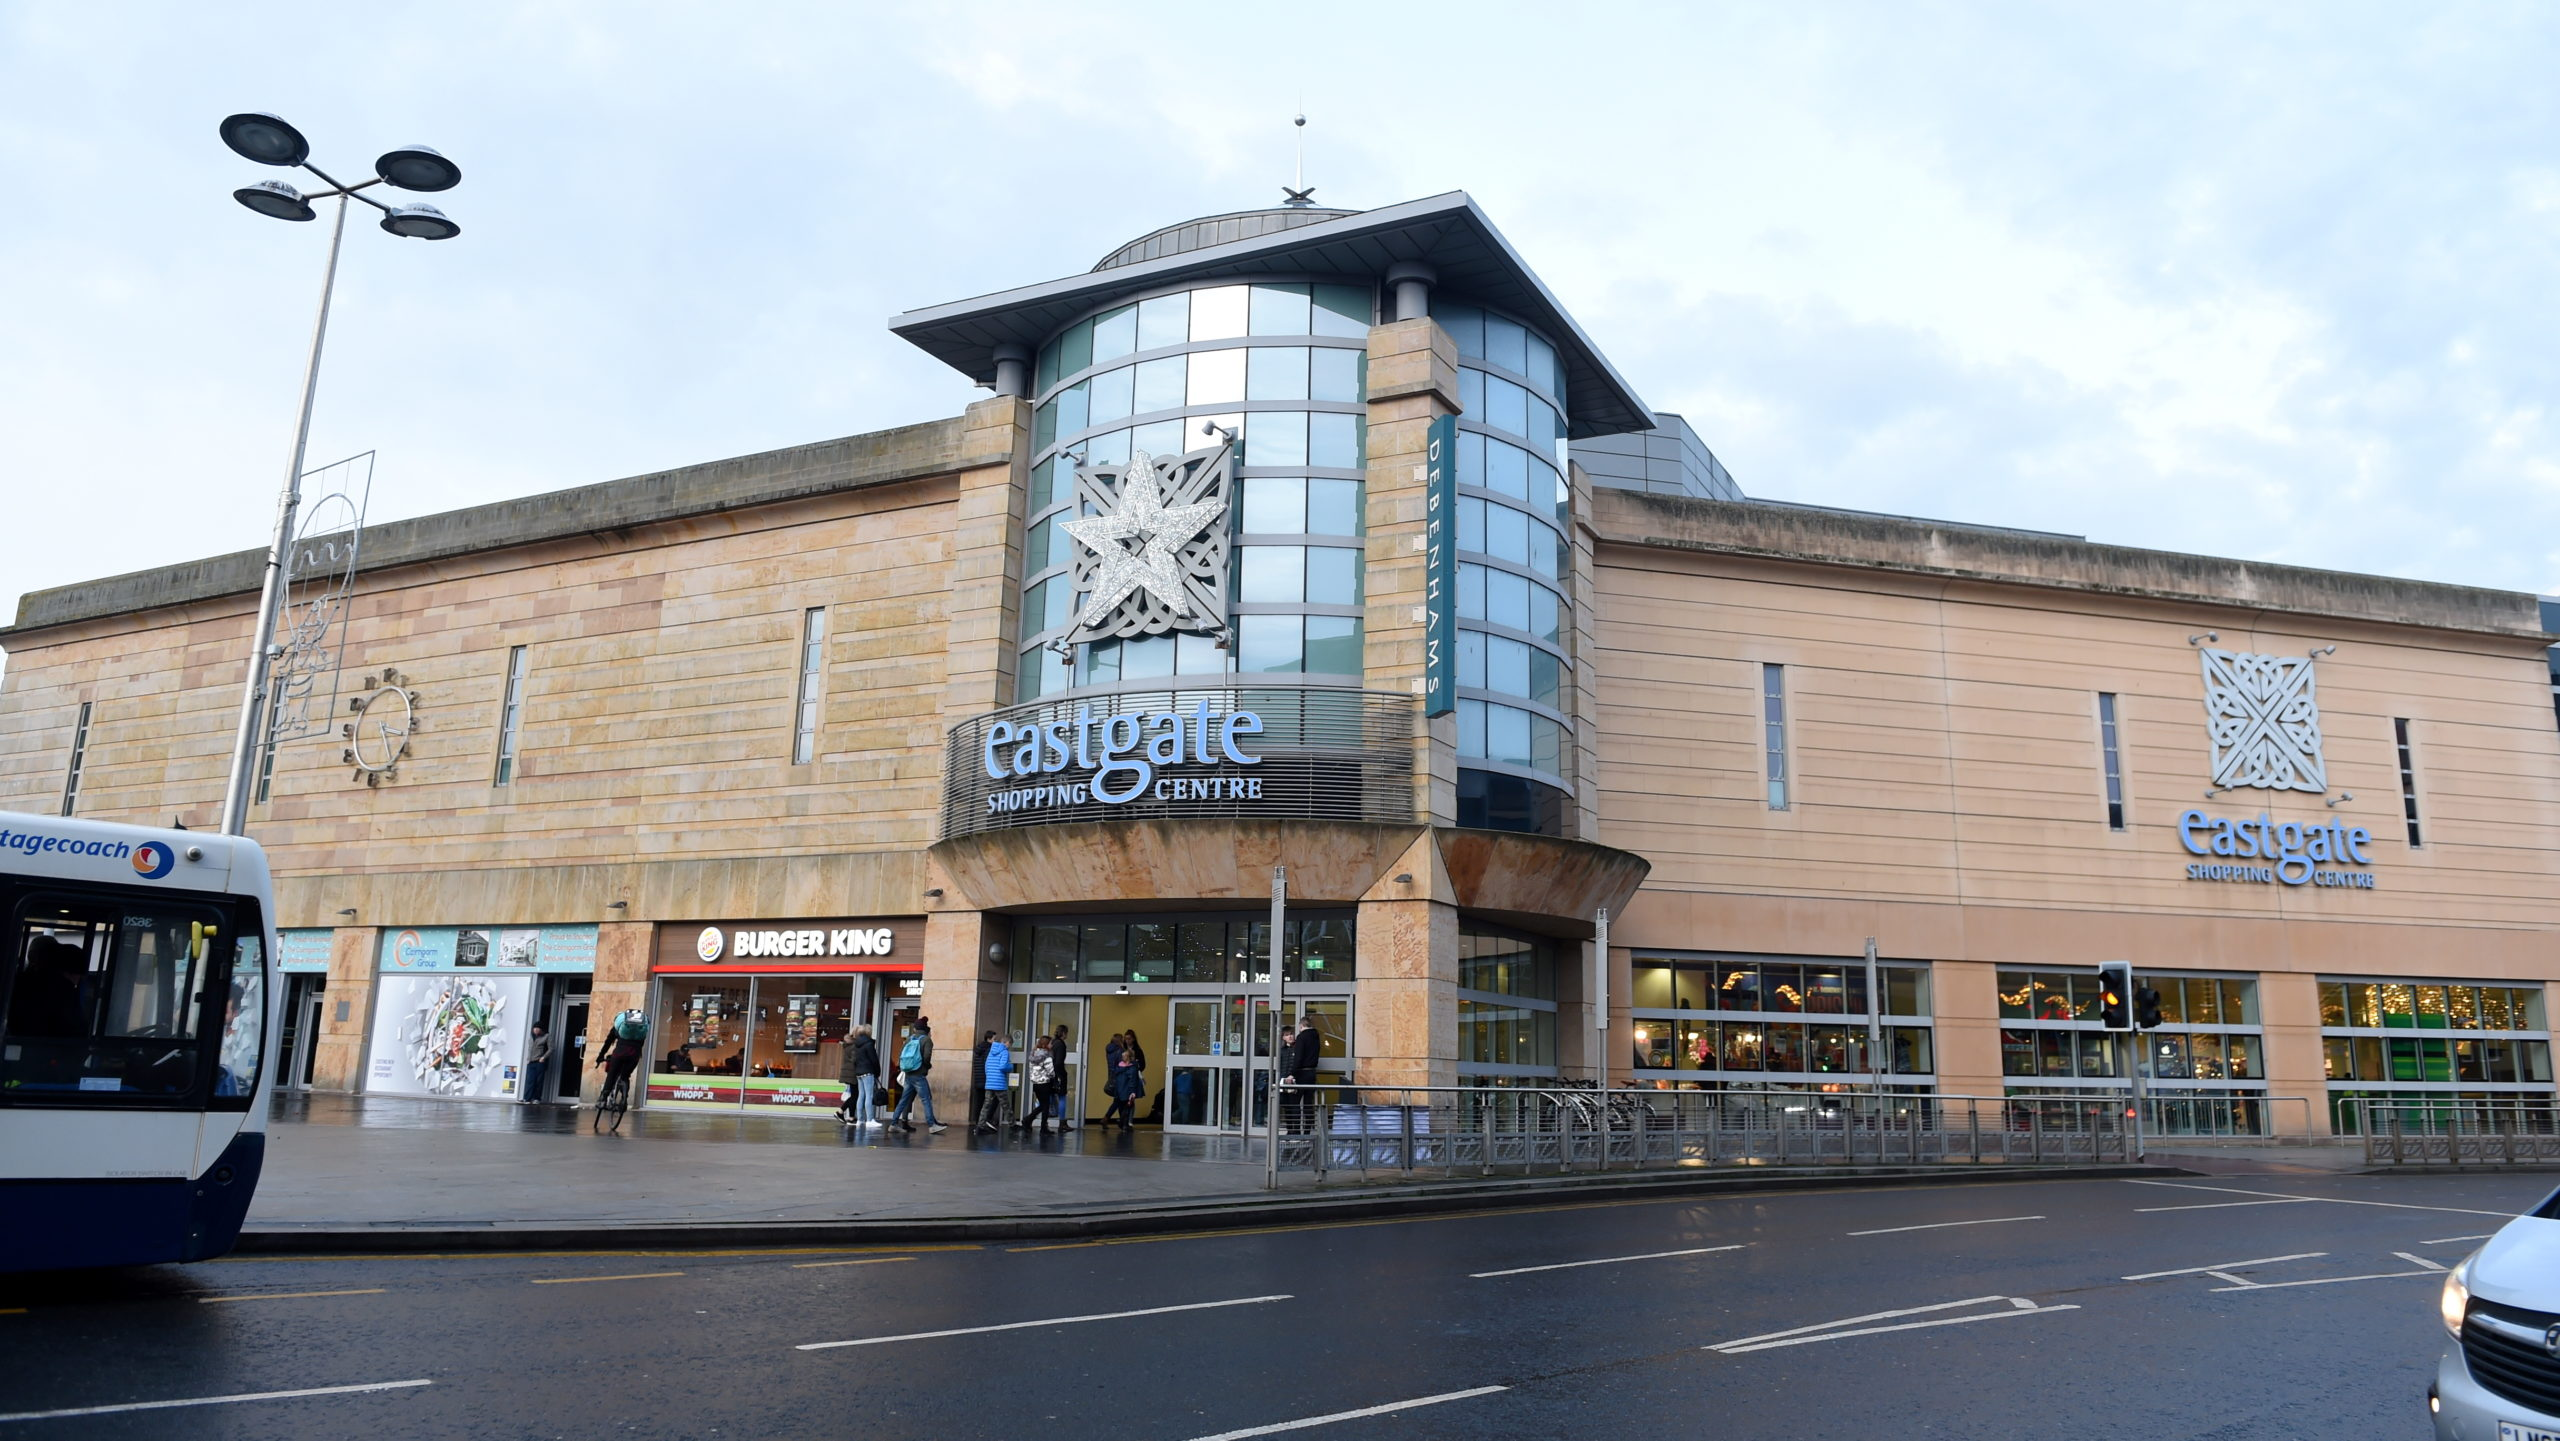 The Eastgate Shopping Centre in Inverness.